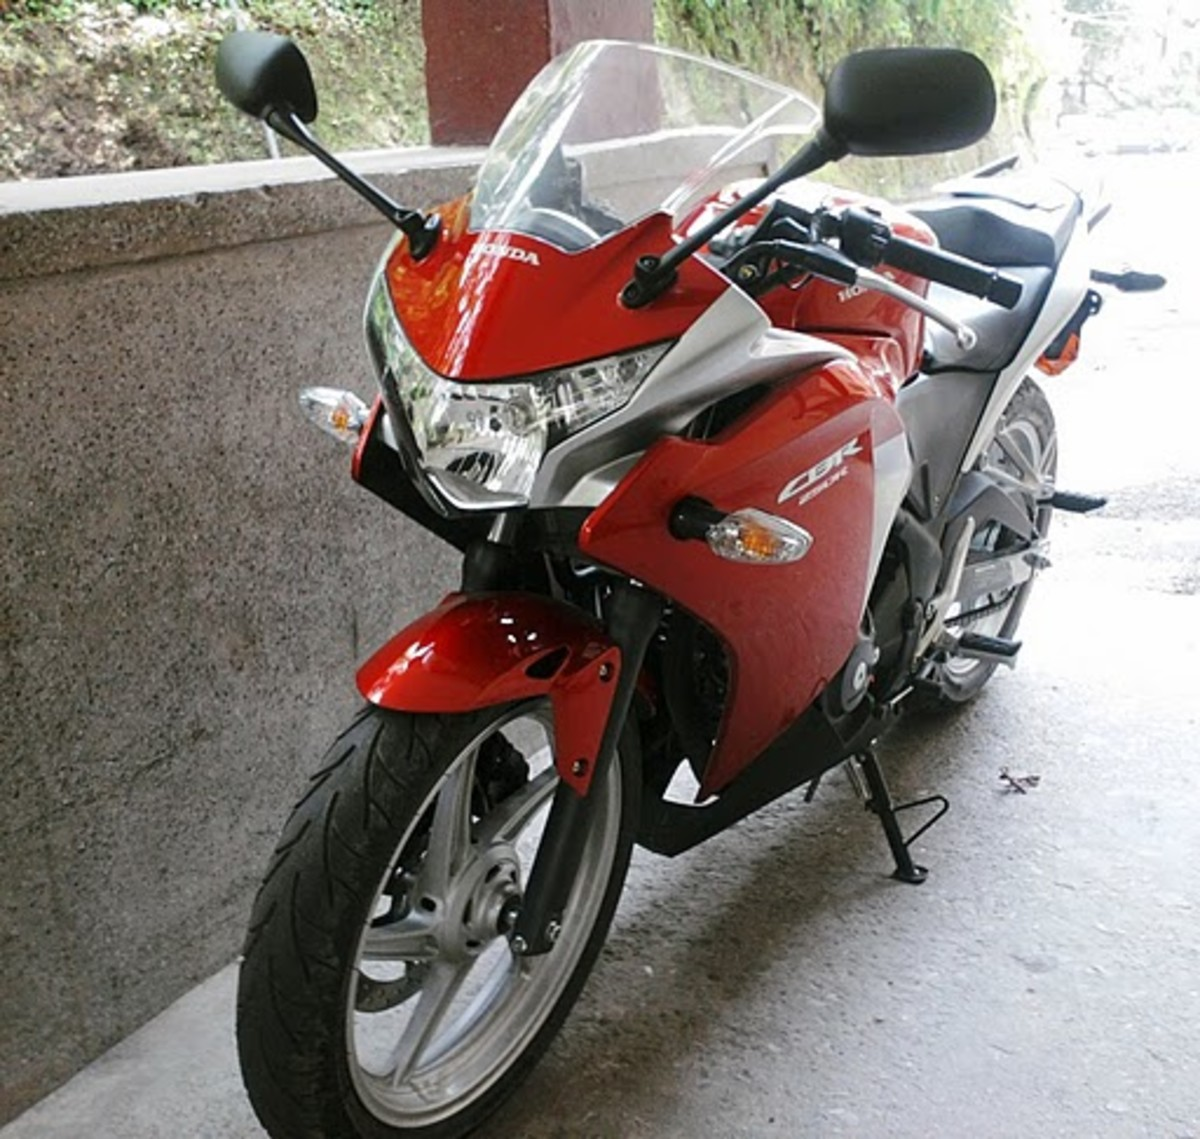 Honda CBR250R Spicy Red - Most girls love this color.